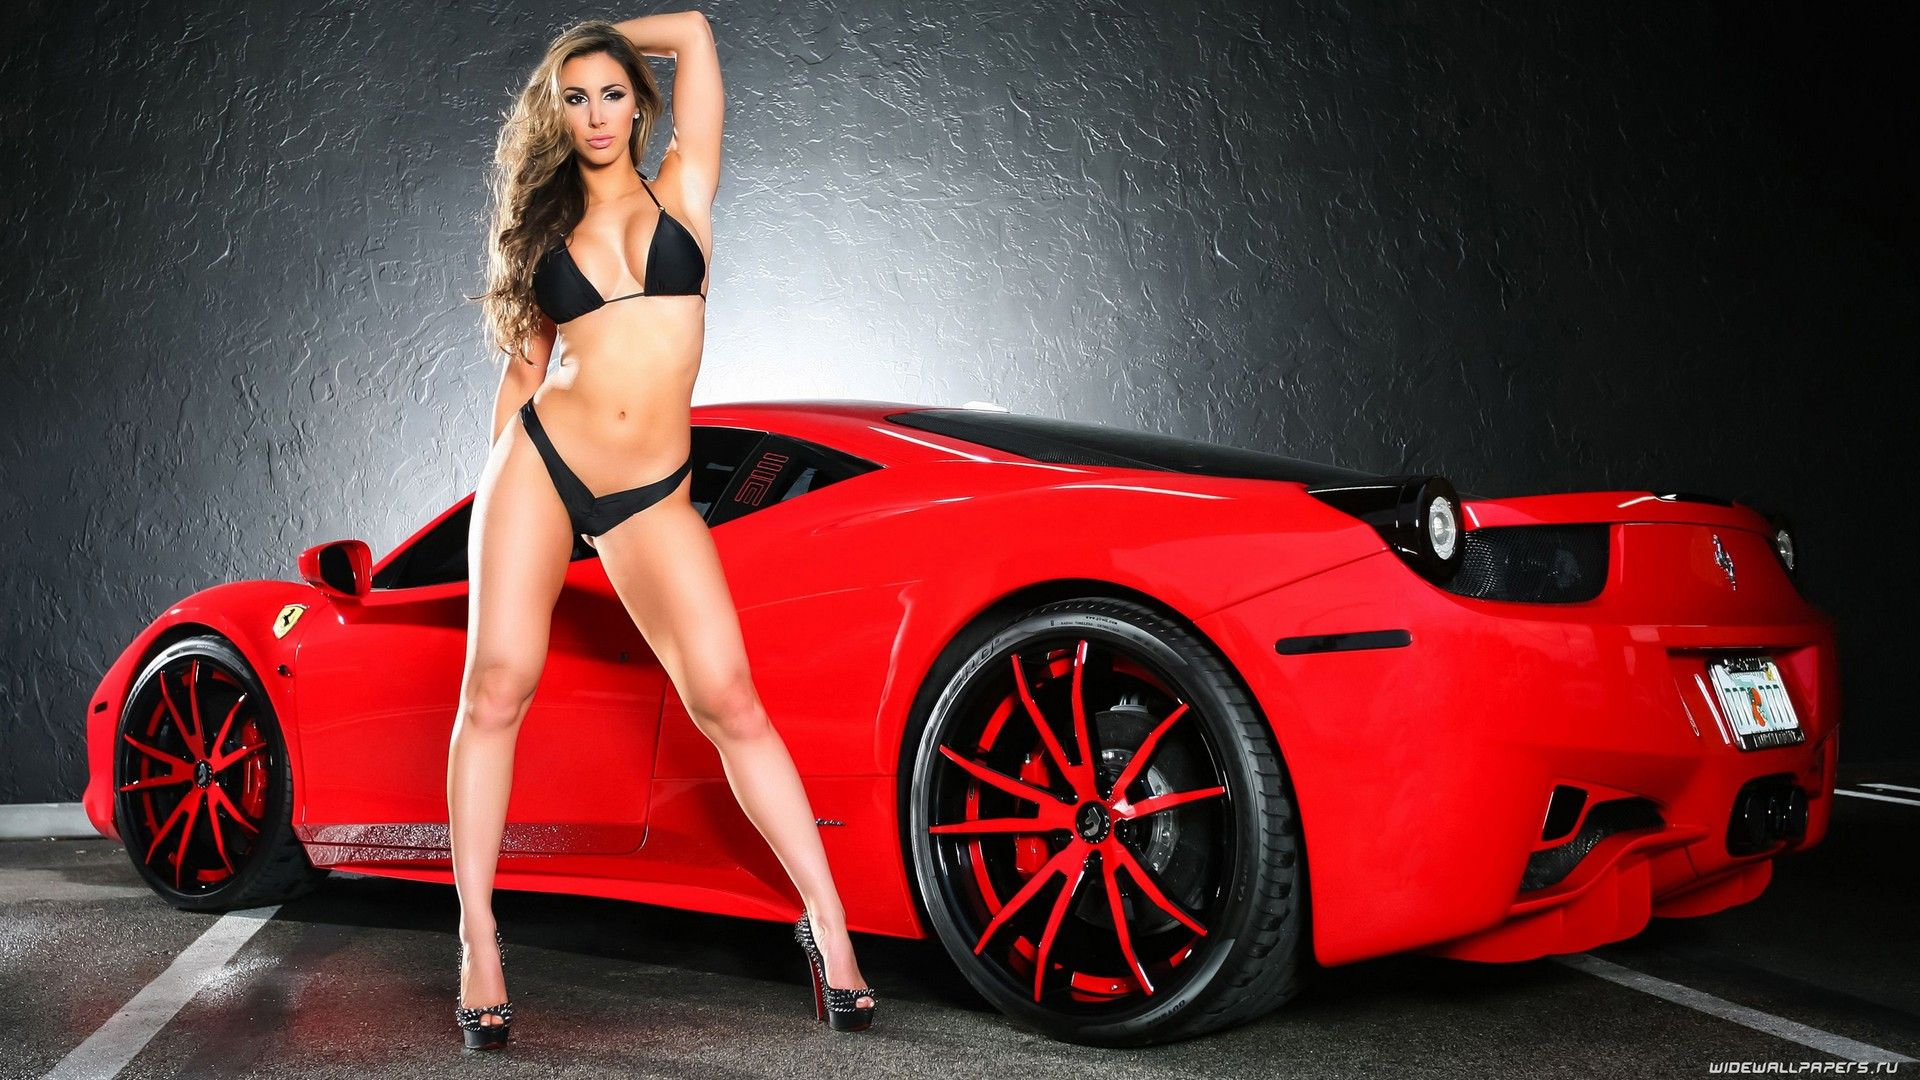 HD Girl and Ferrari wallpaper | Girl and Ferrari wallpapers hd | Pinterest | Ferrari and Girls